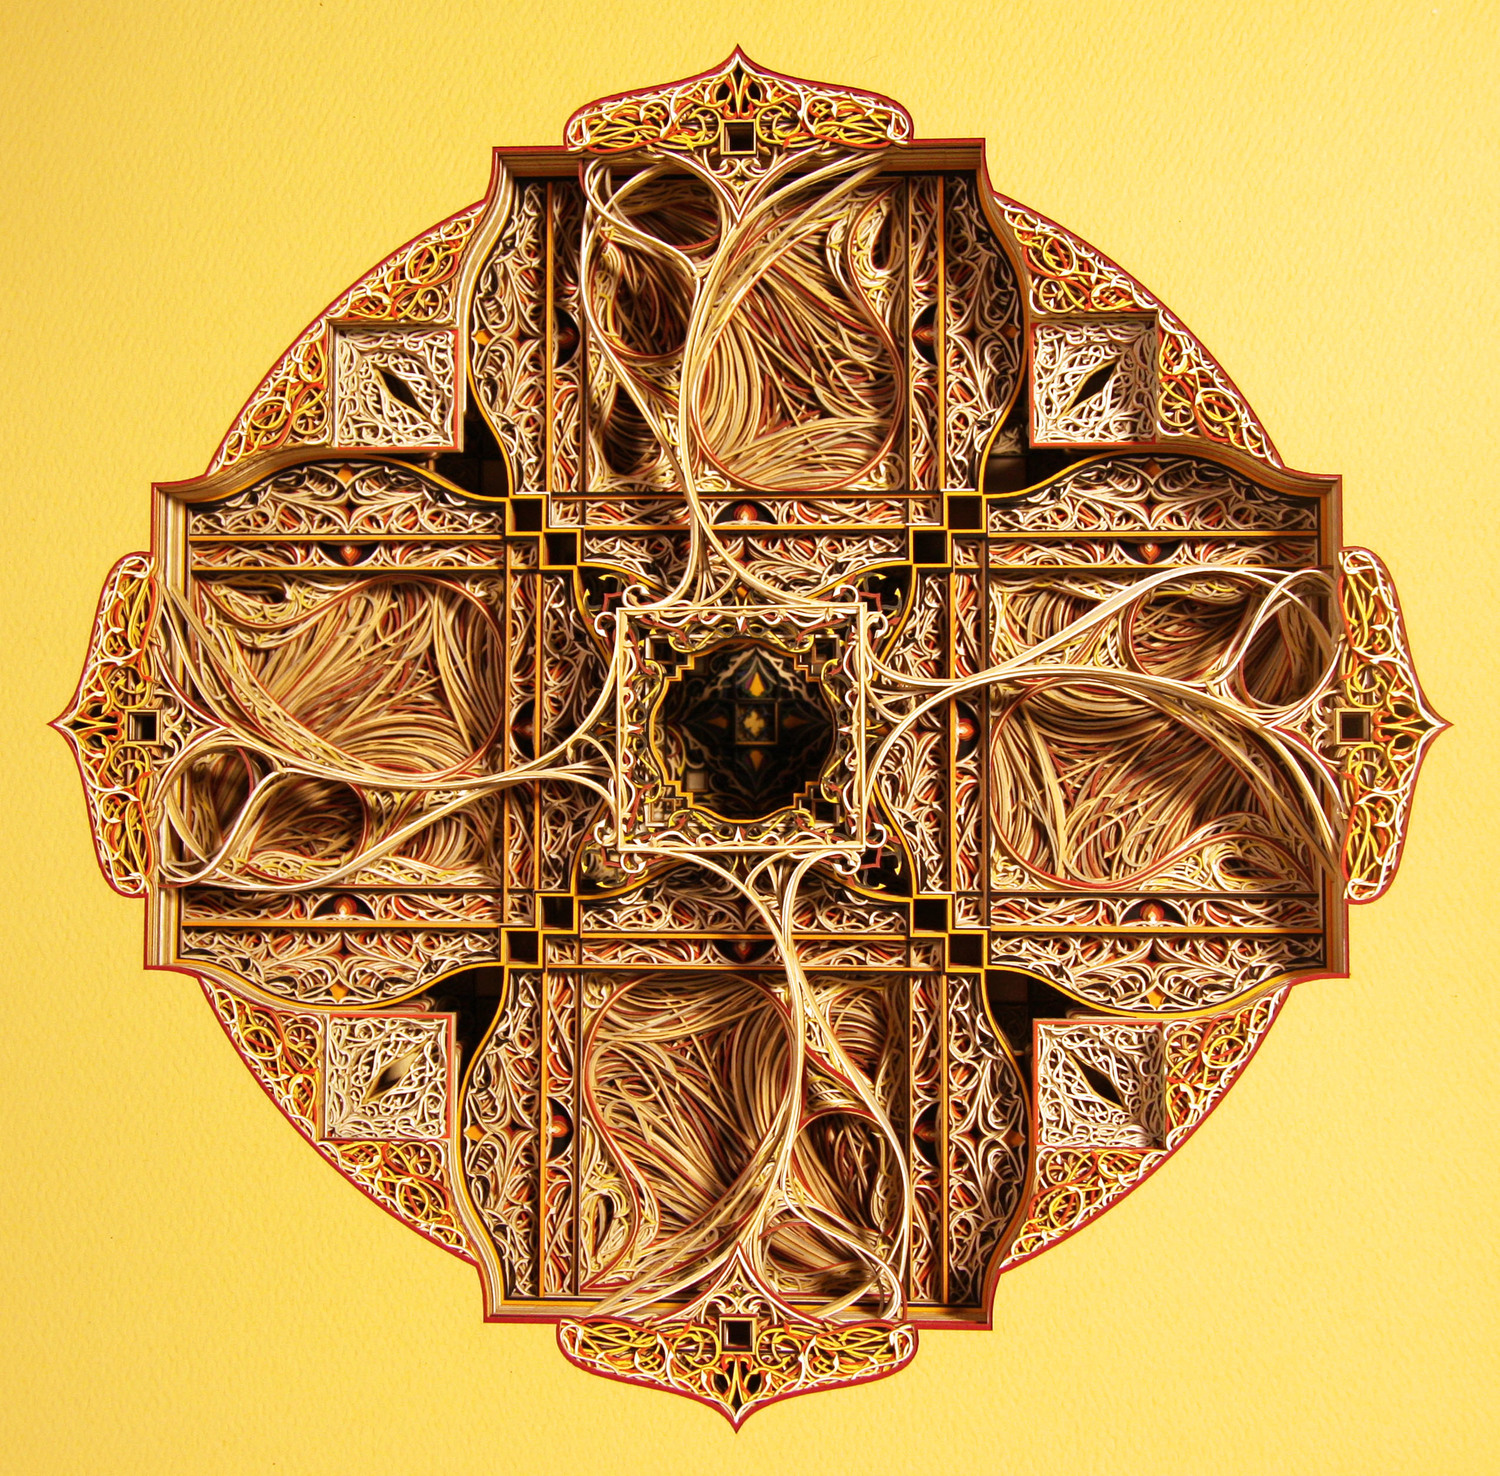 Eric Standley Intricate Stained Glass Windows from Colorful Laser Cut Paper (Video) - Either/Or Delta